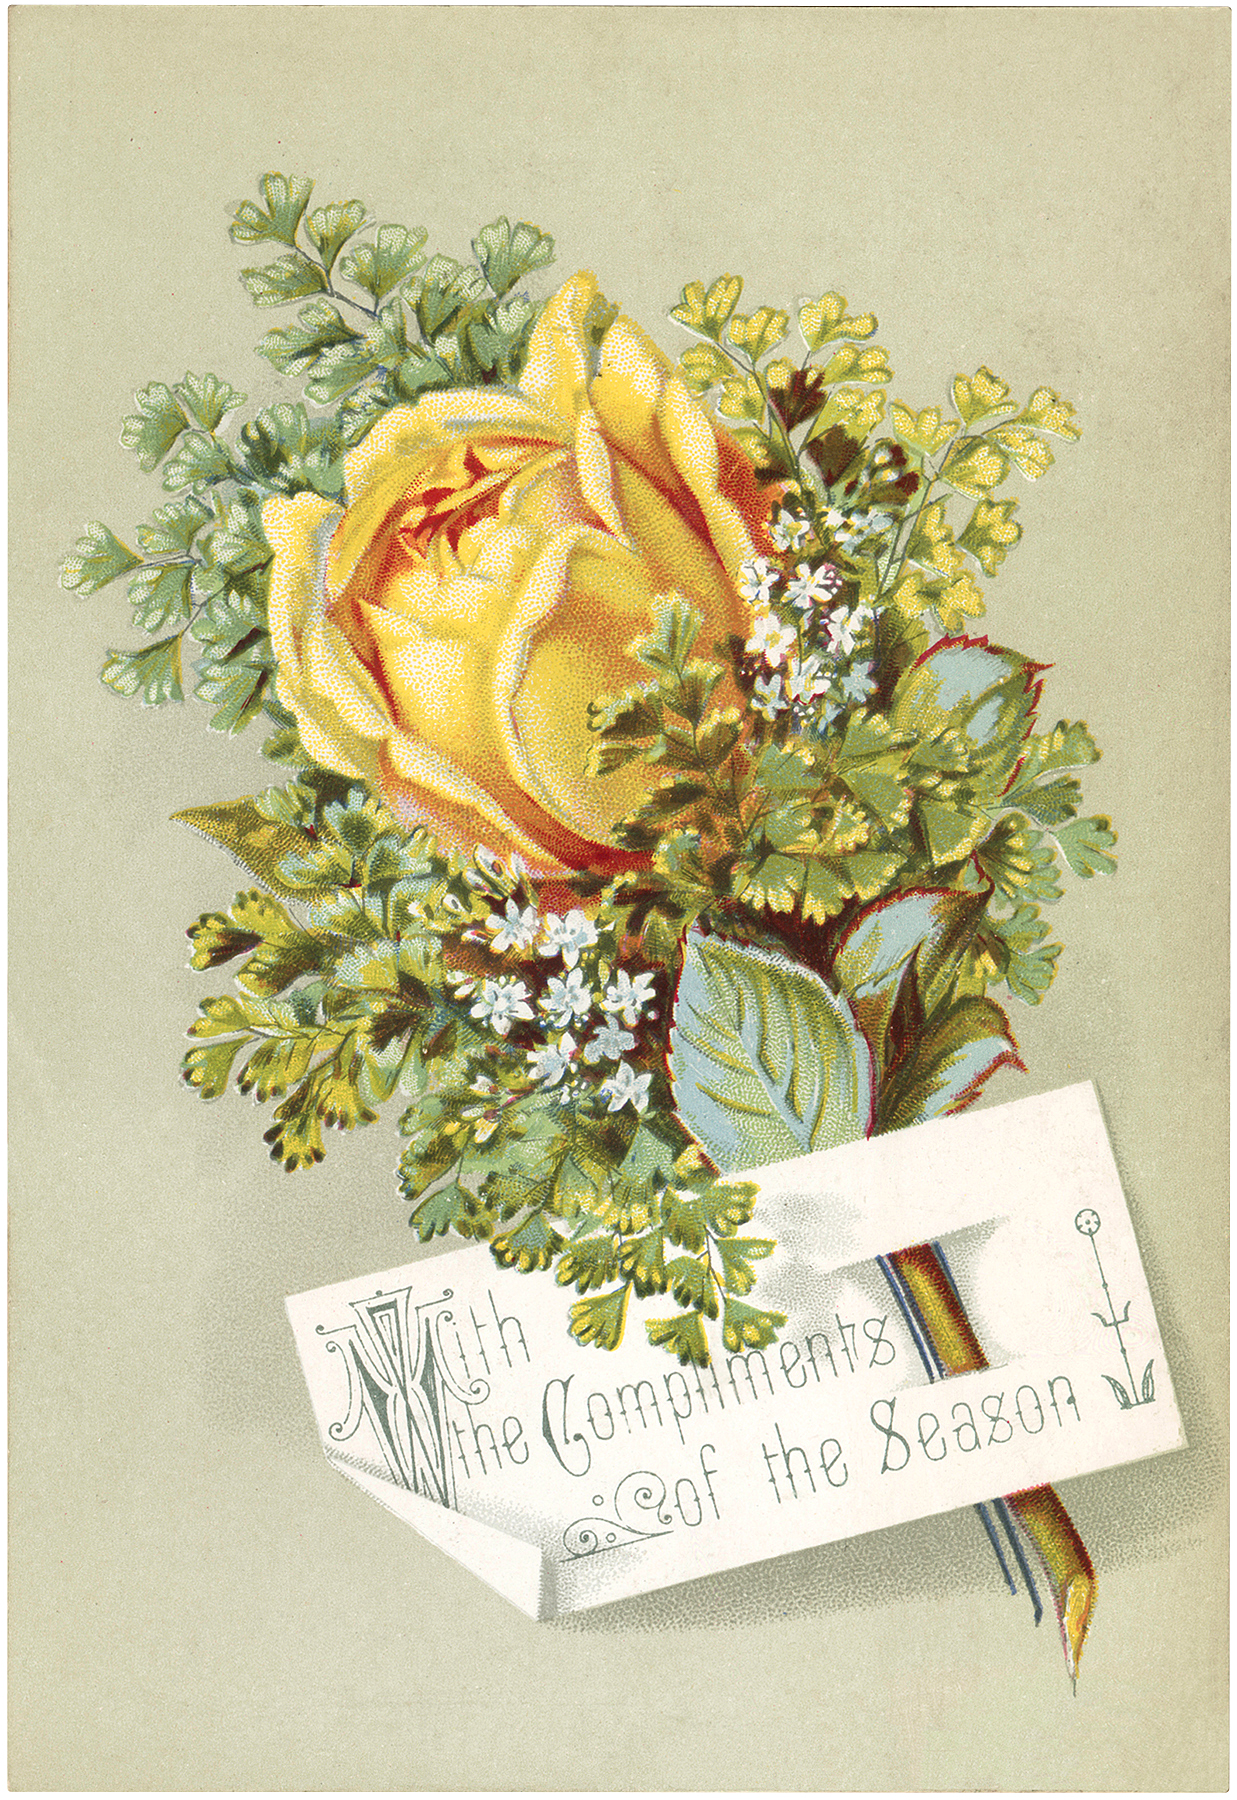 Vintage Yellow Rose Image